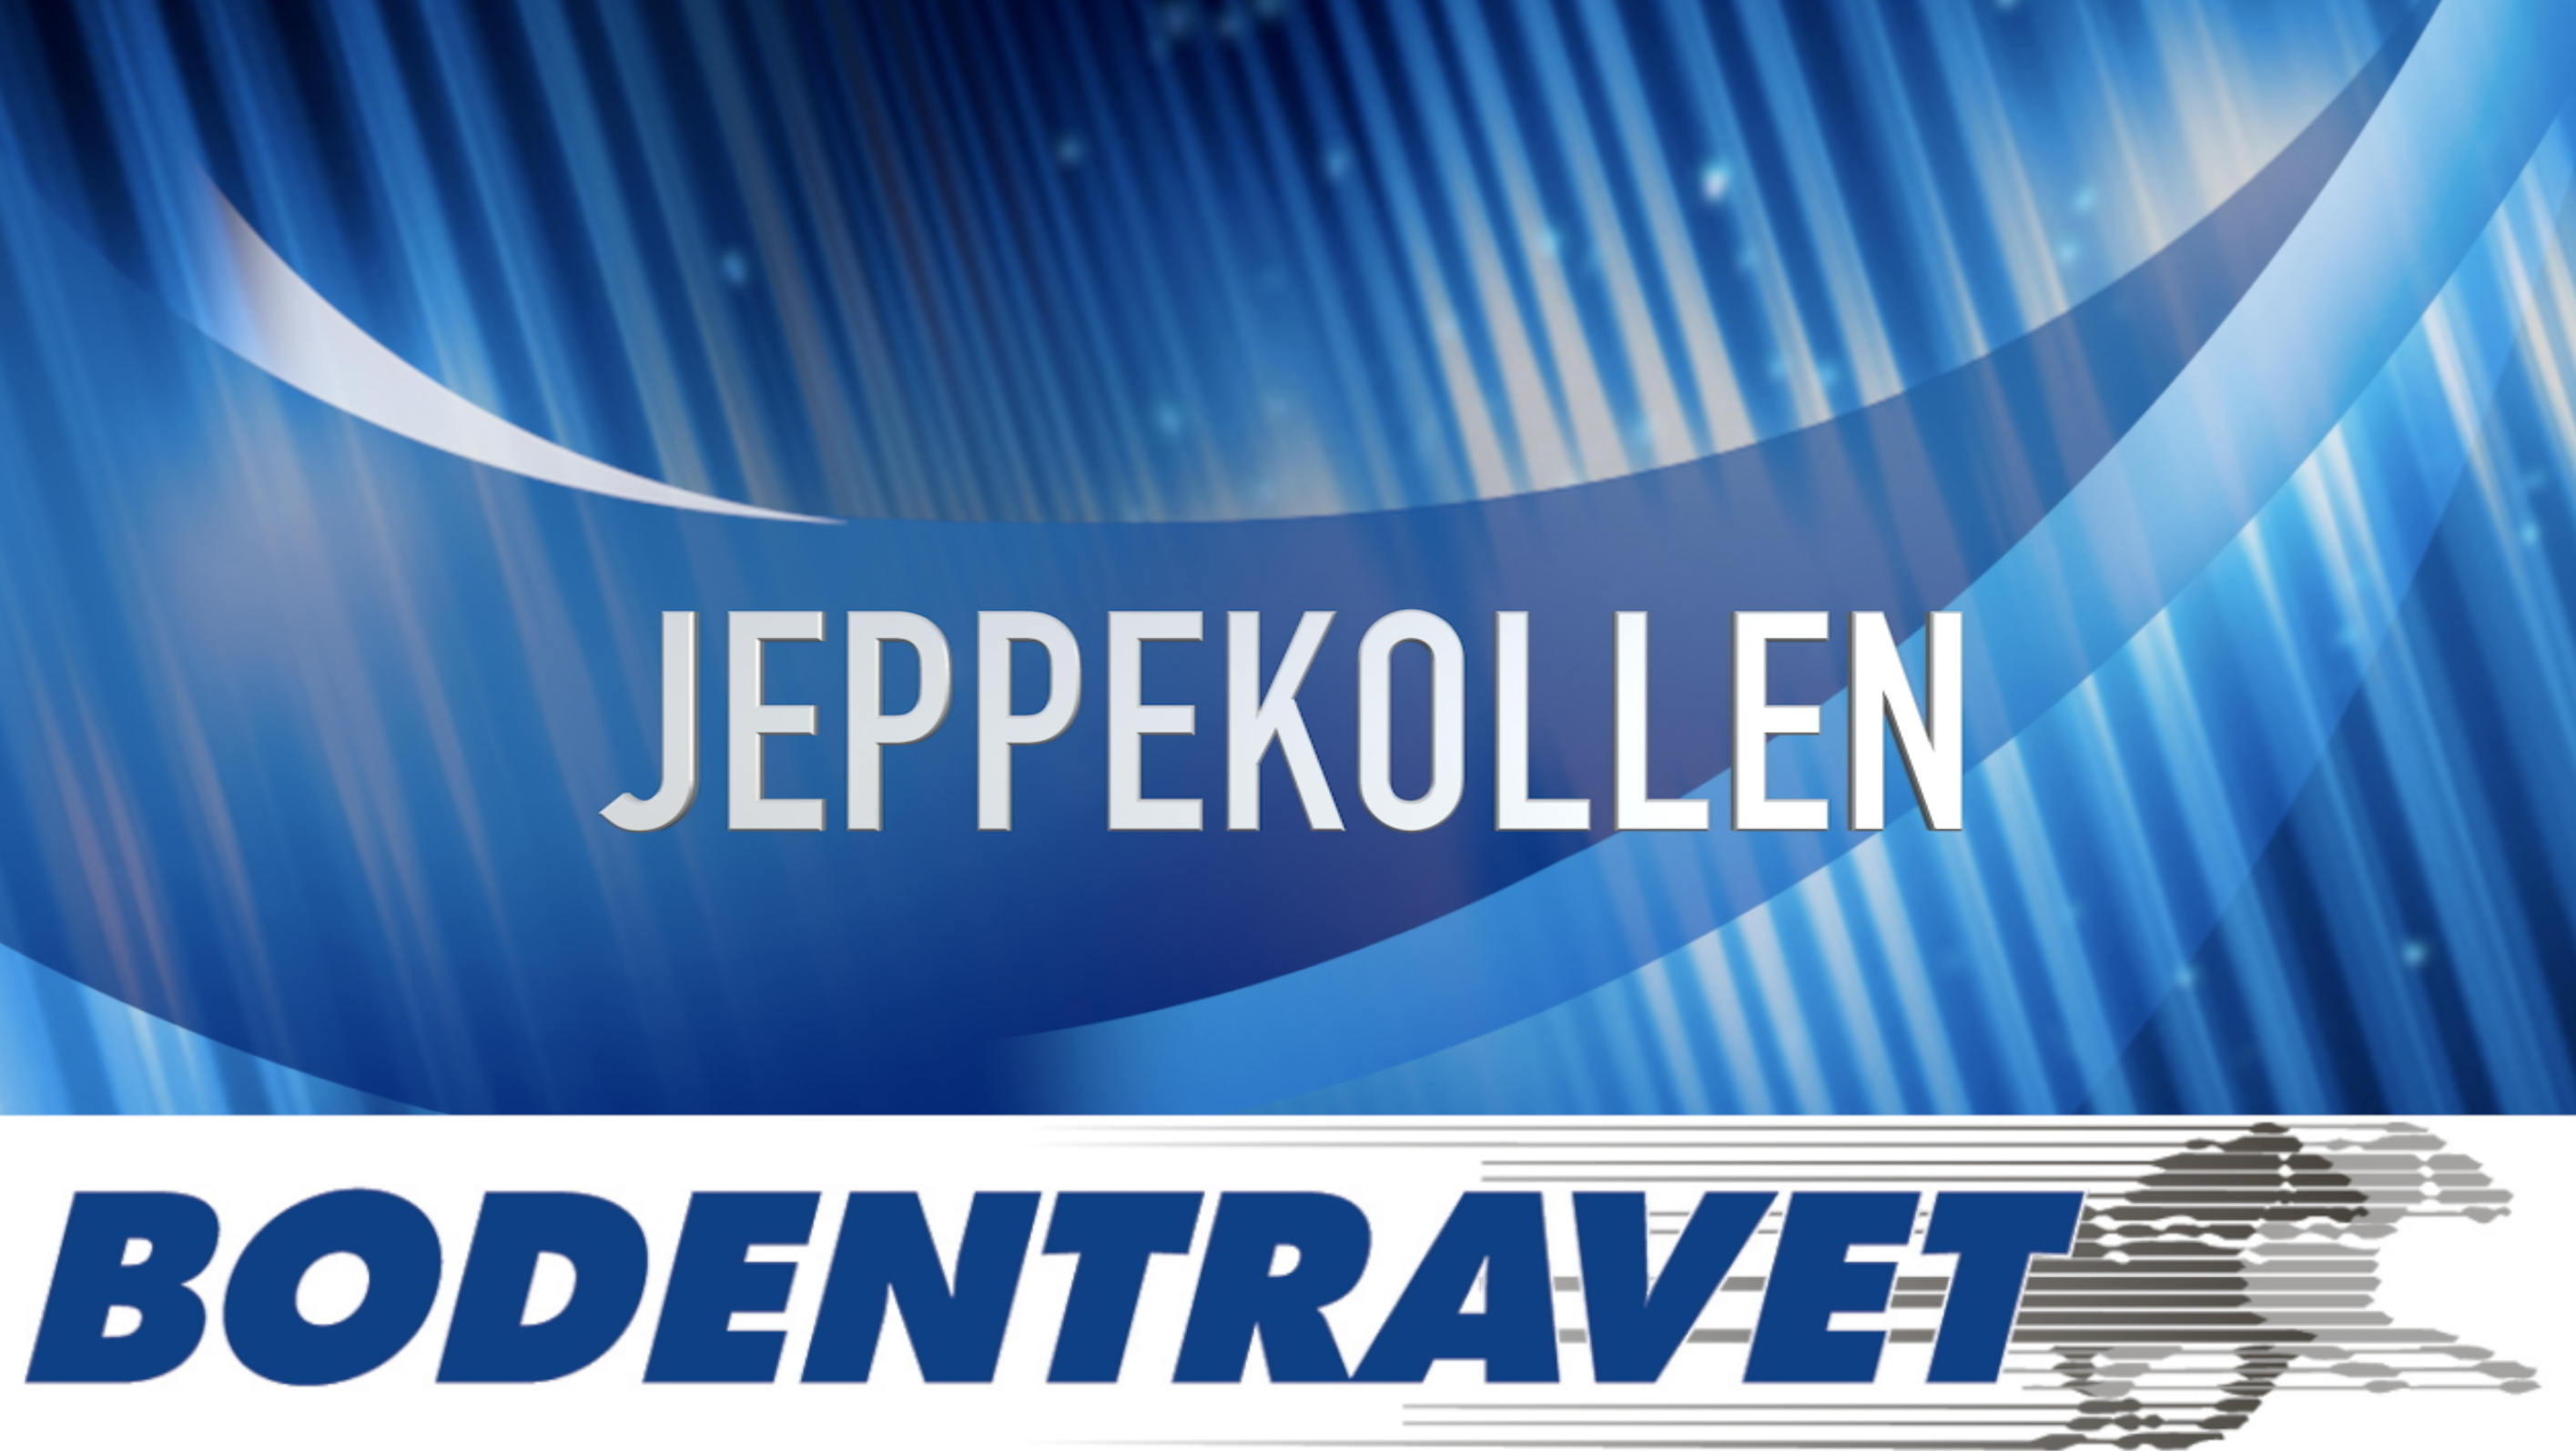 Jeppekollen 24 september